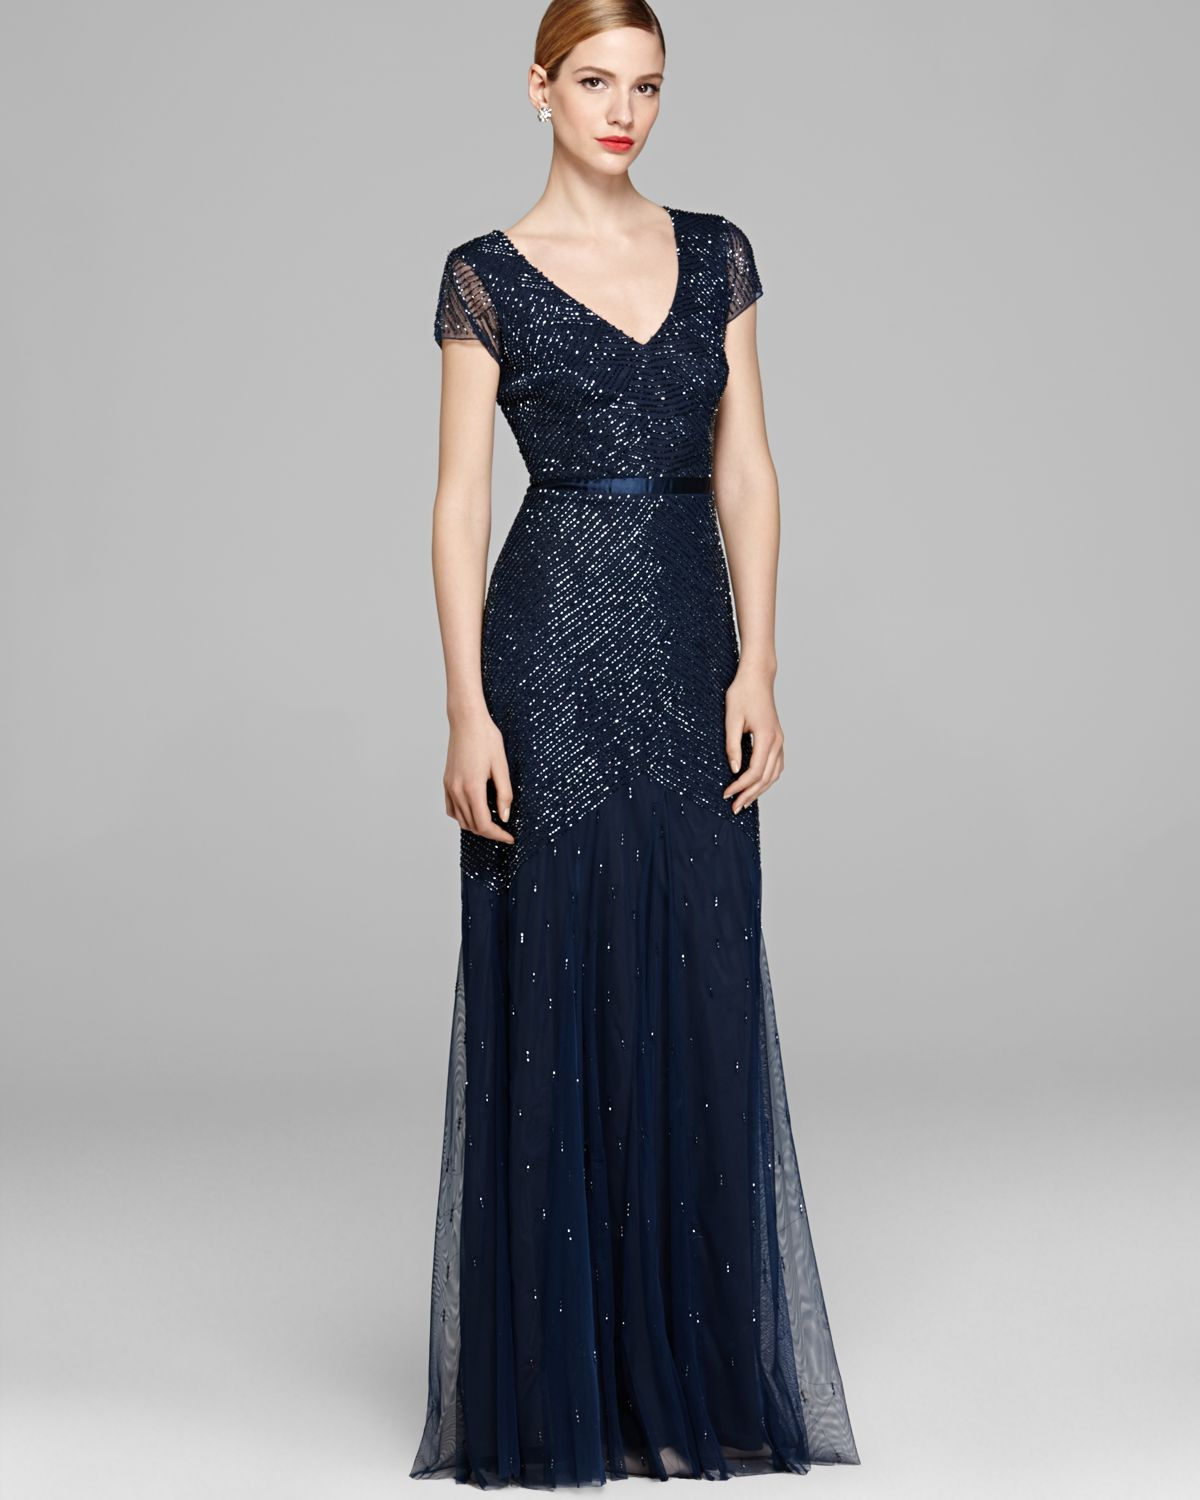 15655b4c053 Adrianna Papell Gown Cap Sleeve Beaded in Blue - Lyst